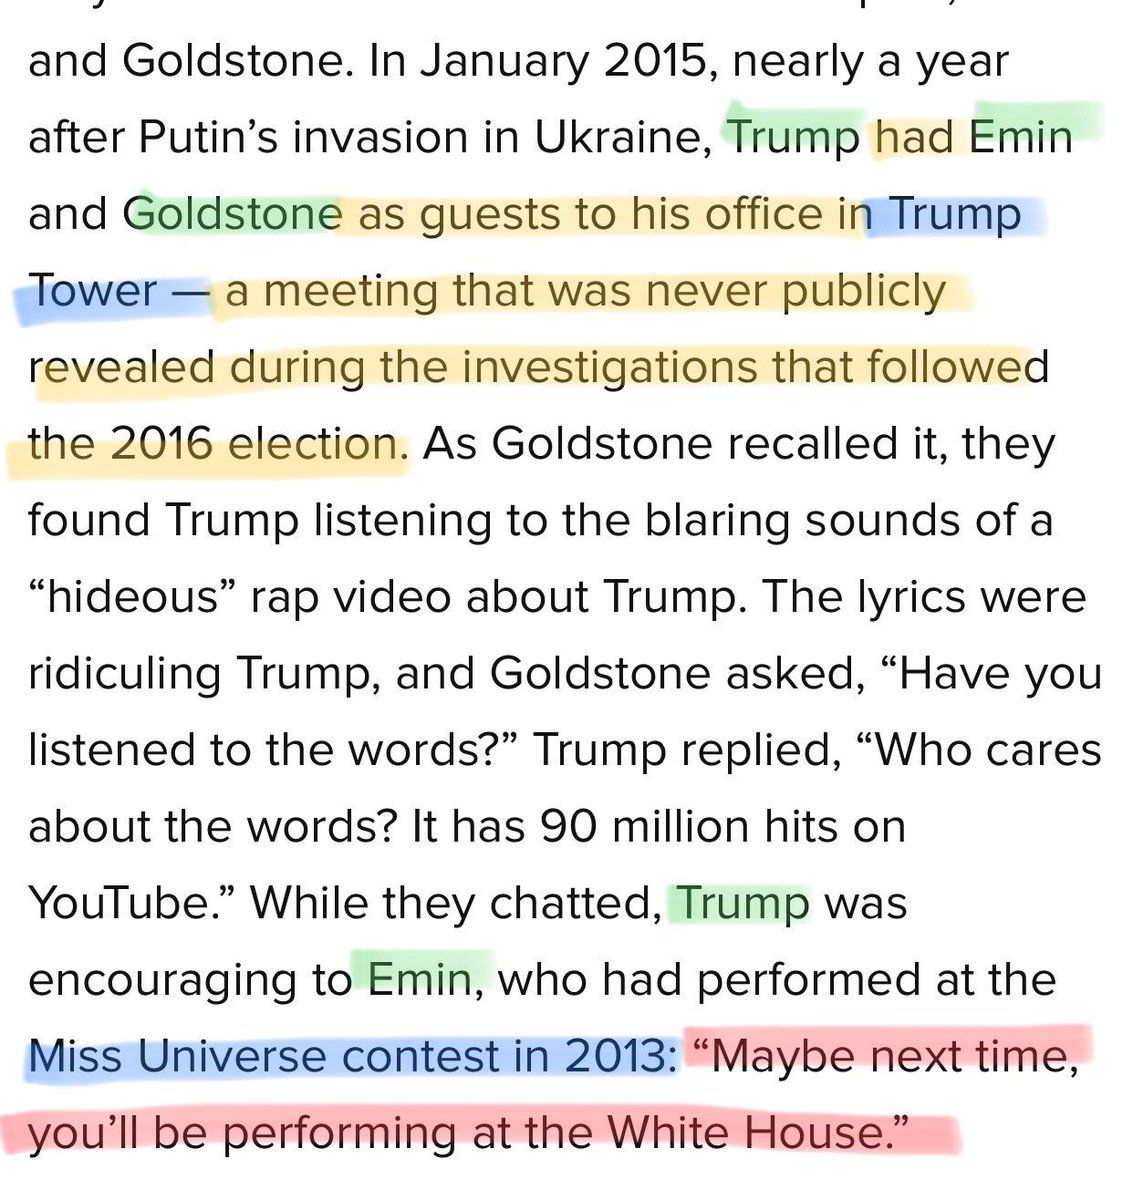 Remember that Emin Agalarov &amp; Rob Goldstone visited Trump in Trump Tower in January 2015. A few months later Goldstone extended an invitation to Trump to Aras Agalarov's Birthday party and a meeting w Putin in Moscow 11/8/2015. They were good friends of Trump <br>http://pic.twitter.com/K3v39o1sxI